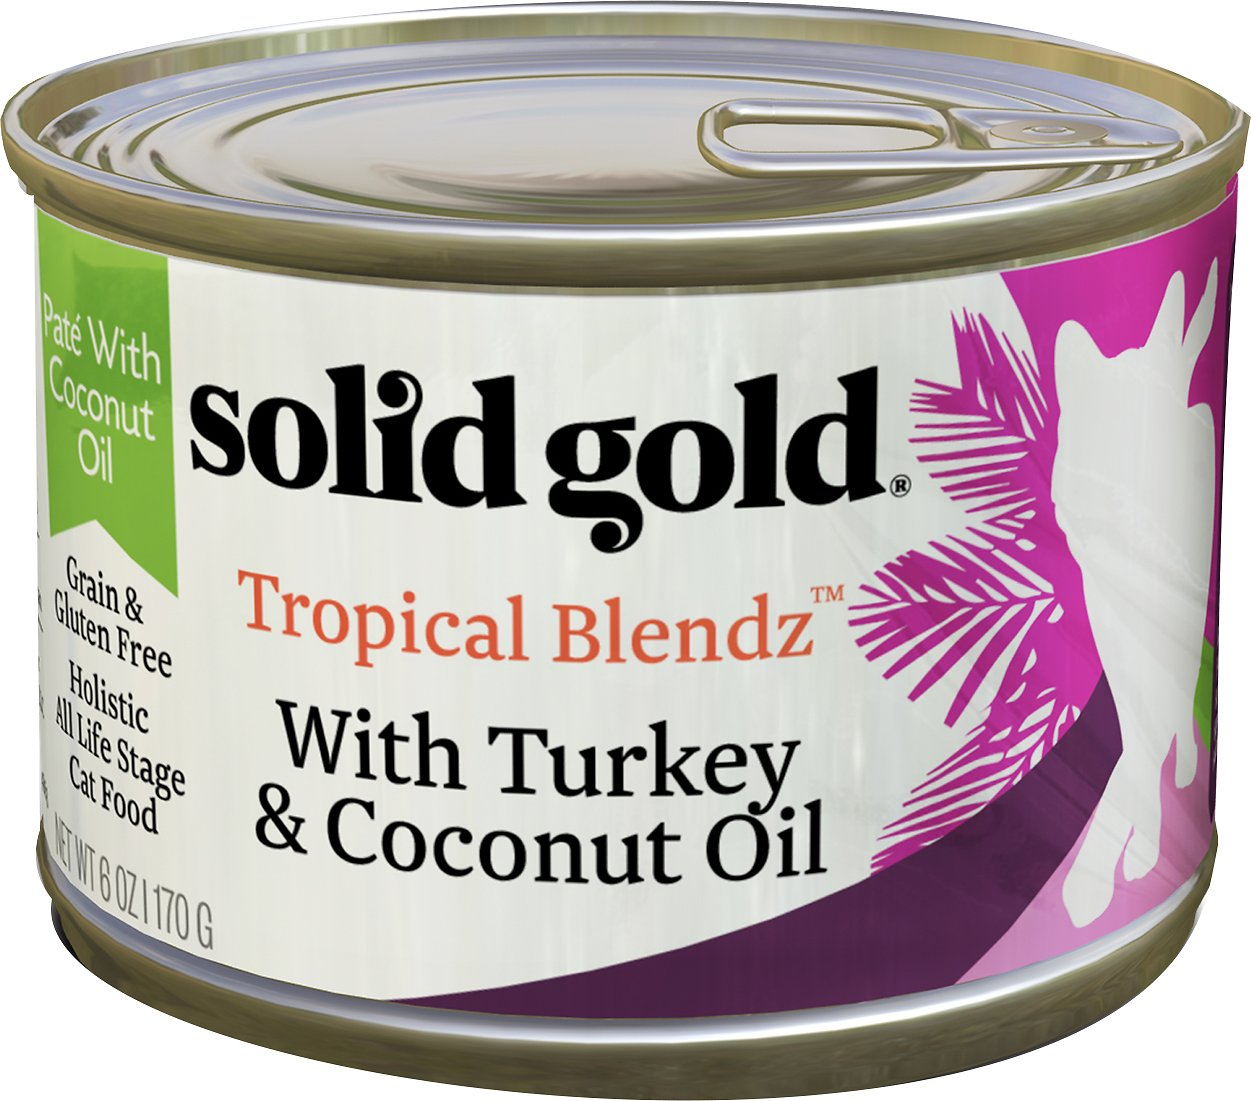 Solid Gold Tropical Blendz with Turkey & Coconut Oil Pate Grain-Free Canned Cat Food